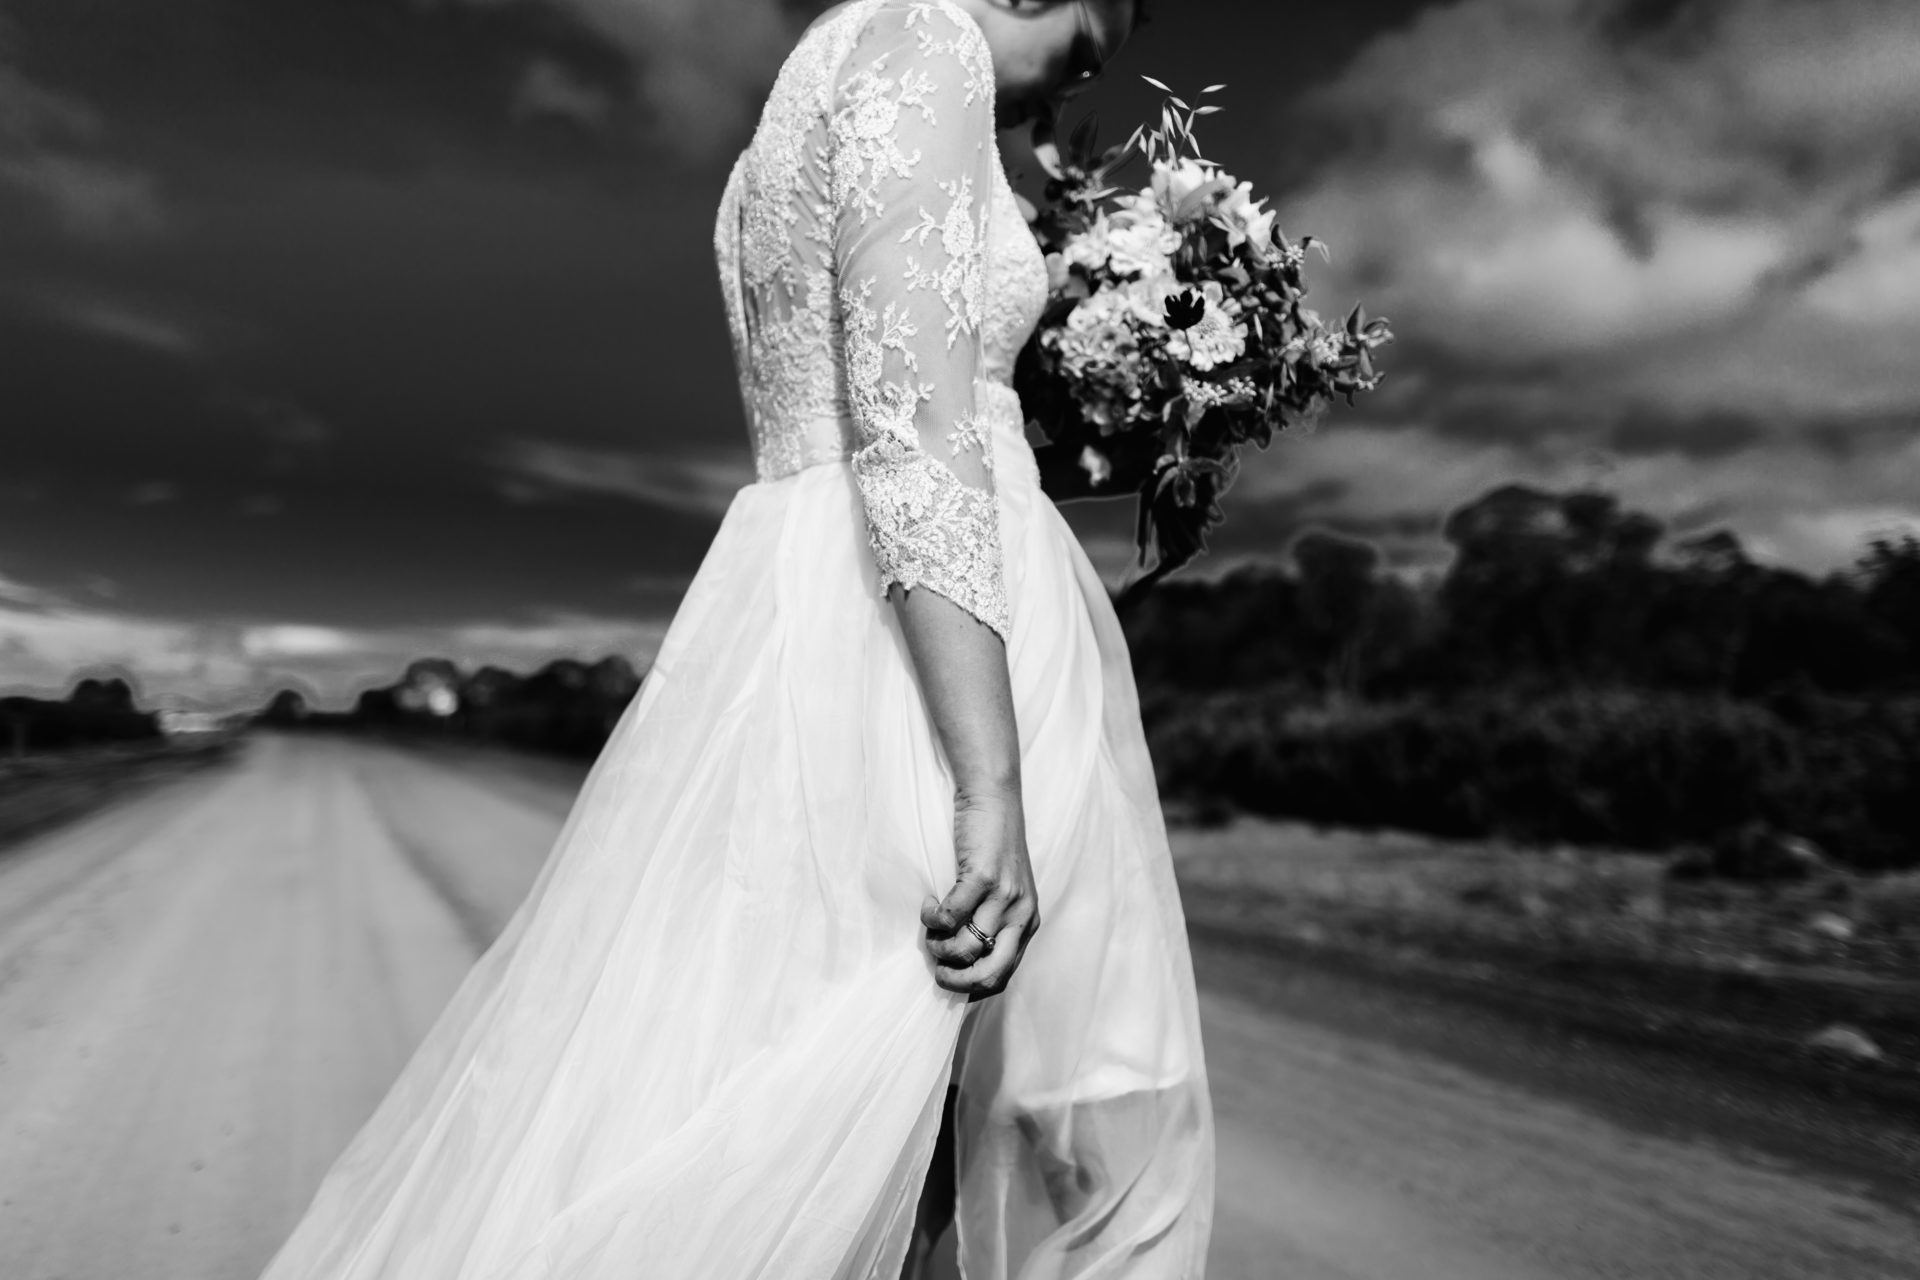 wedding dress shopping munich-elfenkleid-fair fashion wedding gown-